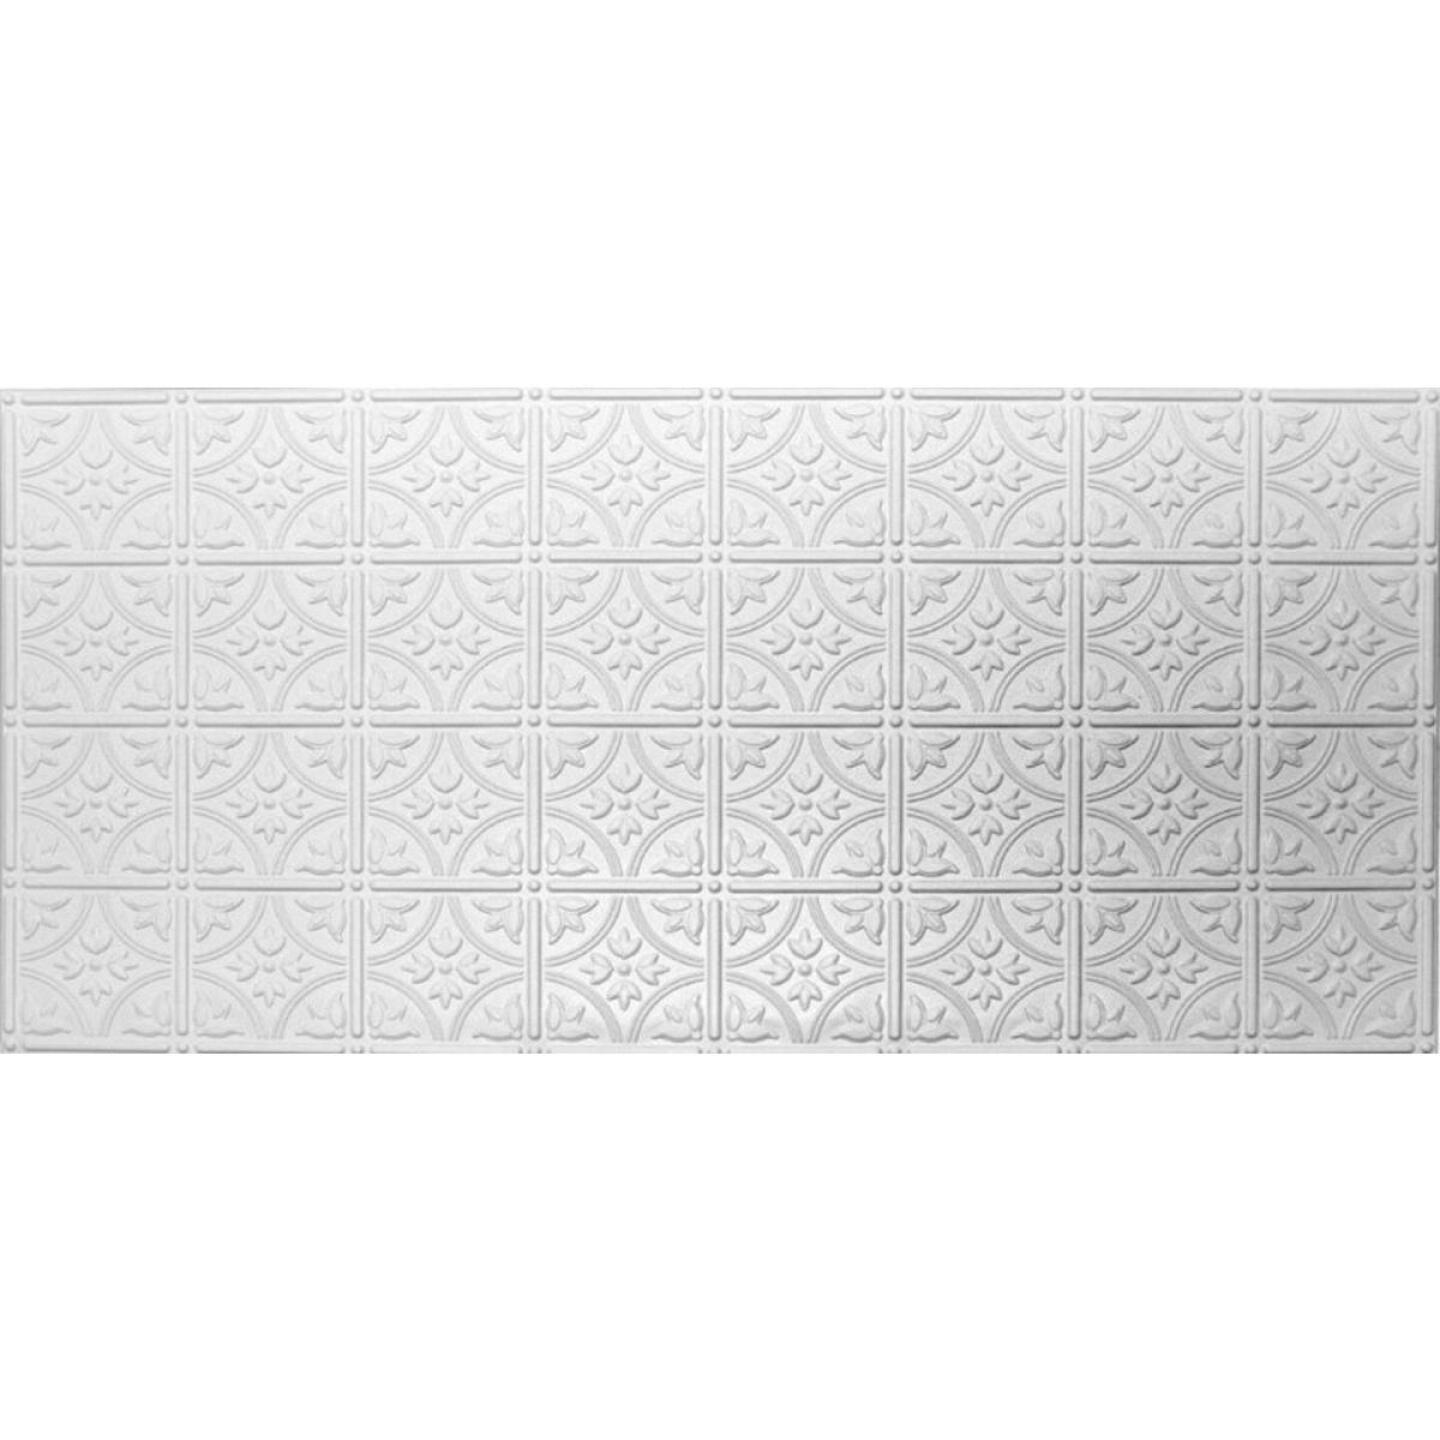 Dimensions 2 Ft. x 4 Ft. White 6 In. Circle/Square Pattern Tin Look Nonsuspended Ceiling Tile & Backsplash Image 2